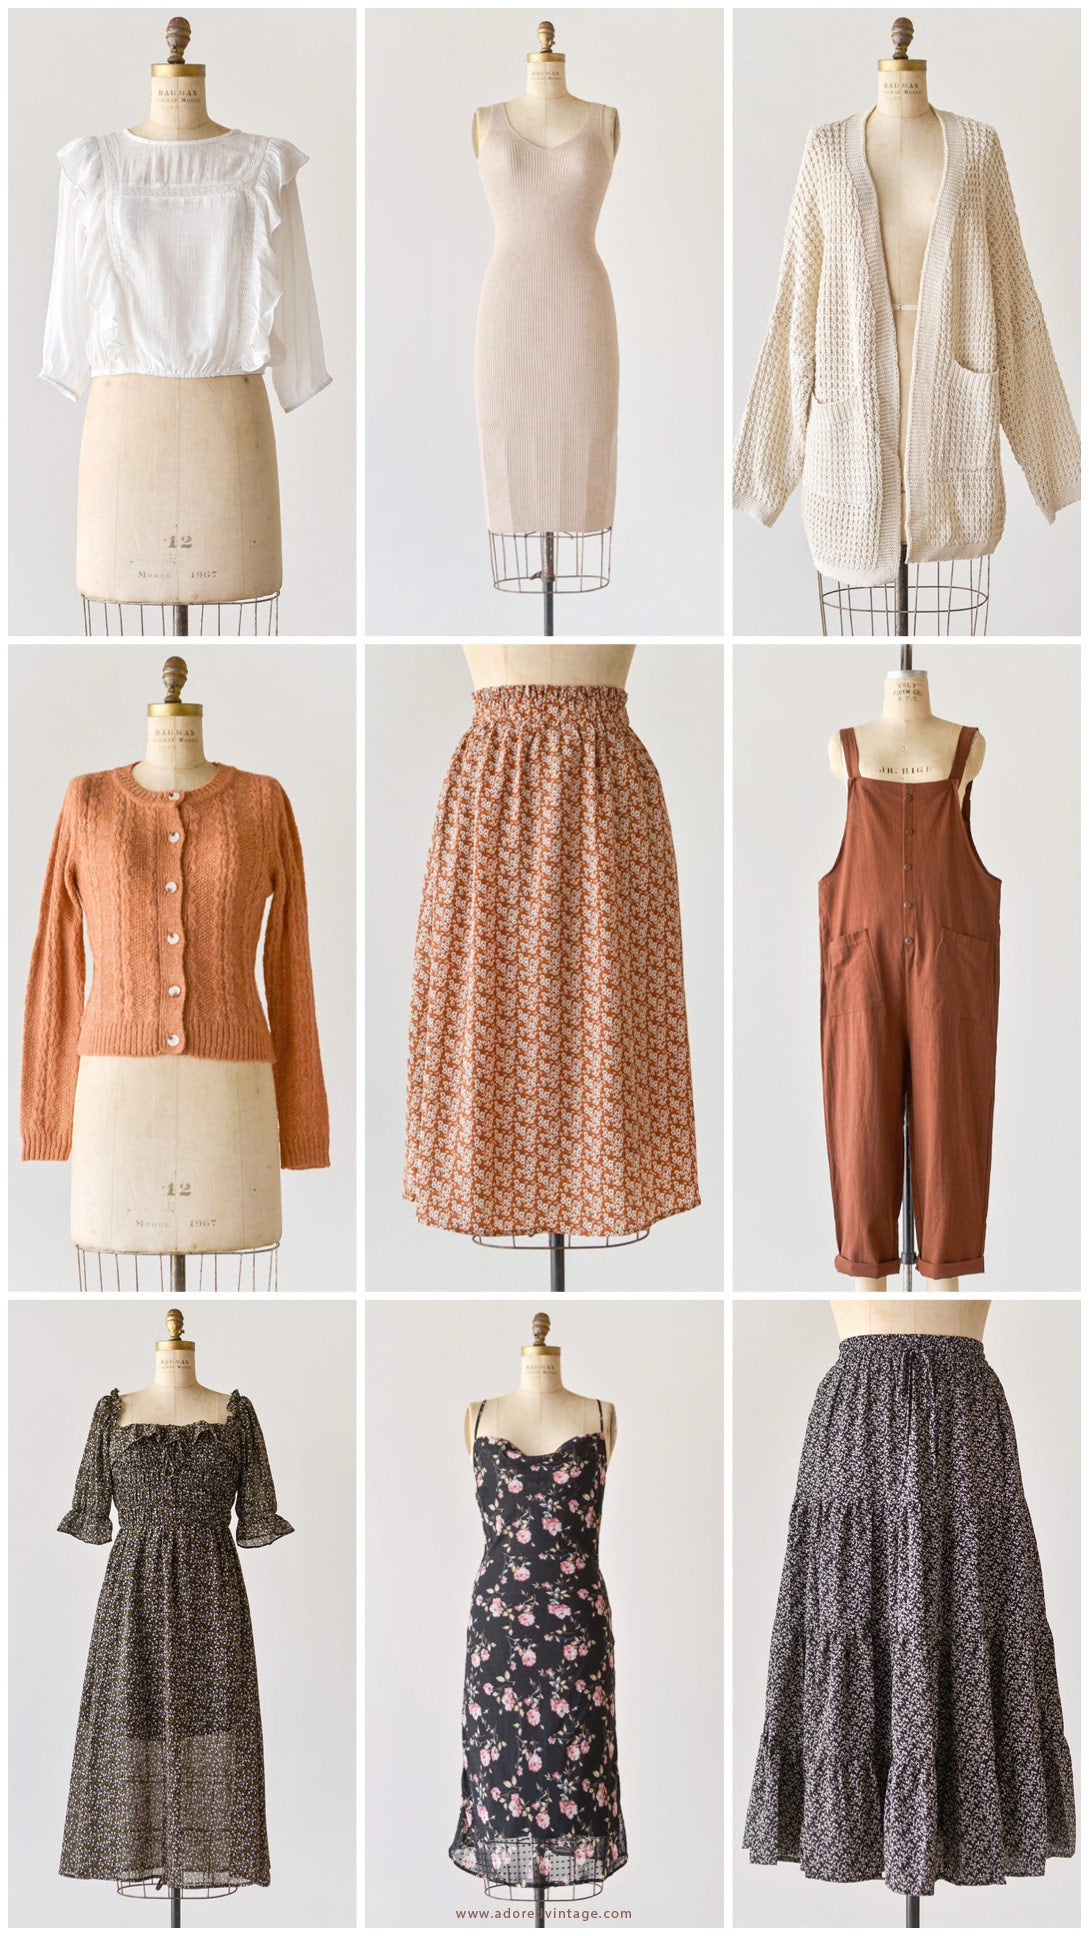 New Arrivals / Adored Vintage / Timeless and Feminine Clothing Boutique Inspired By Vintage